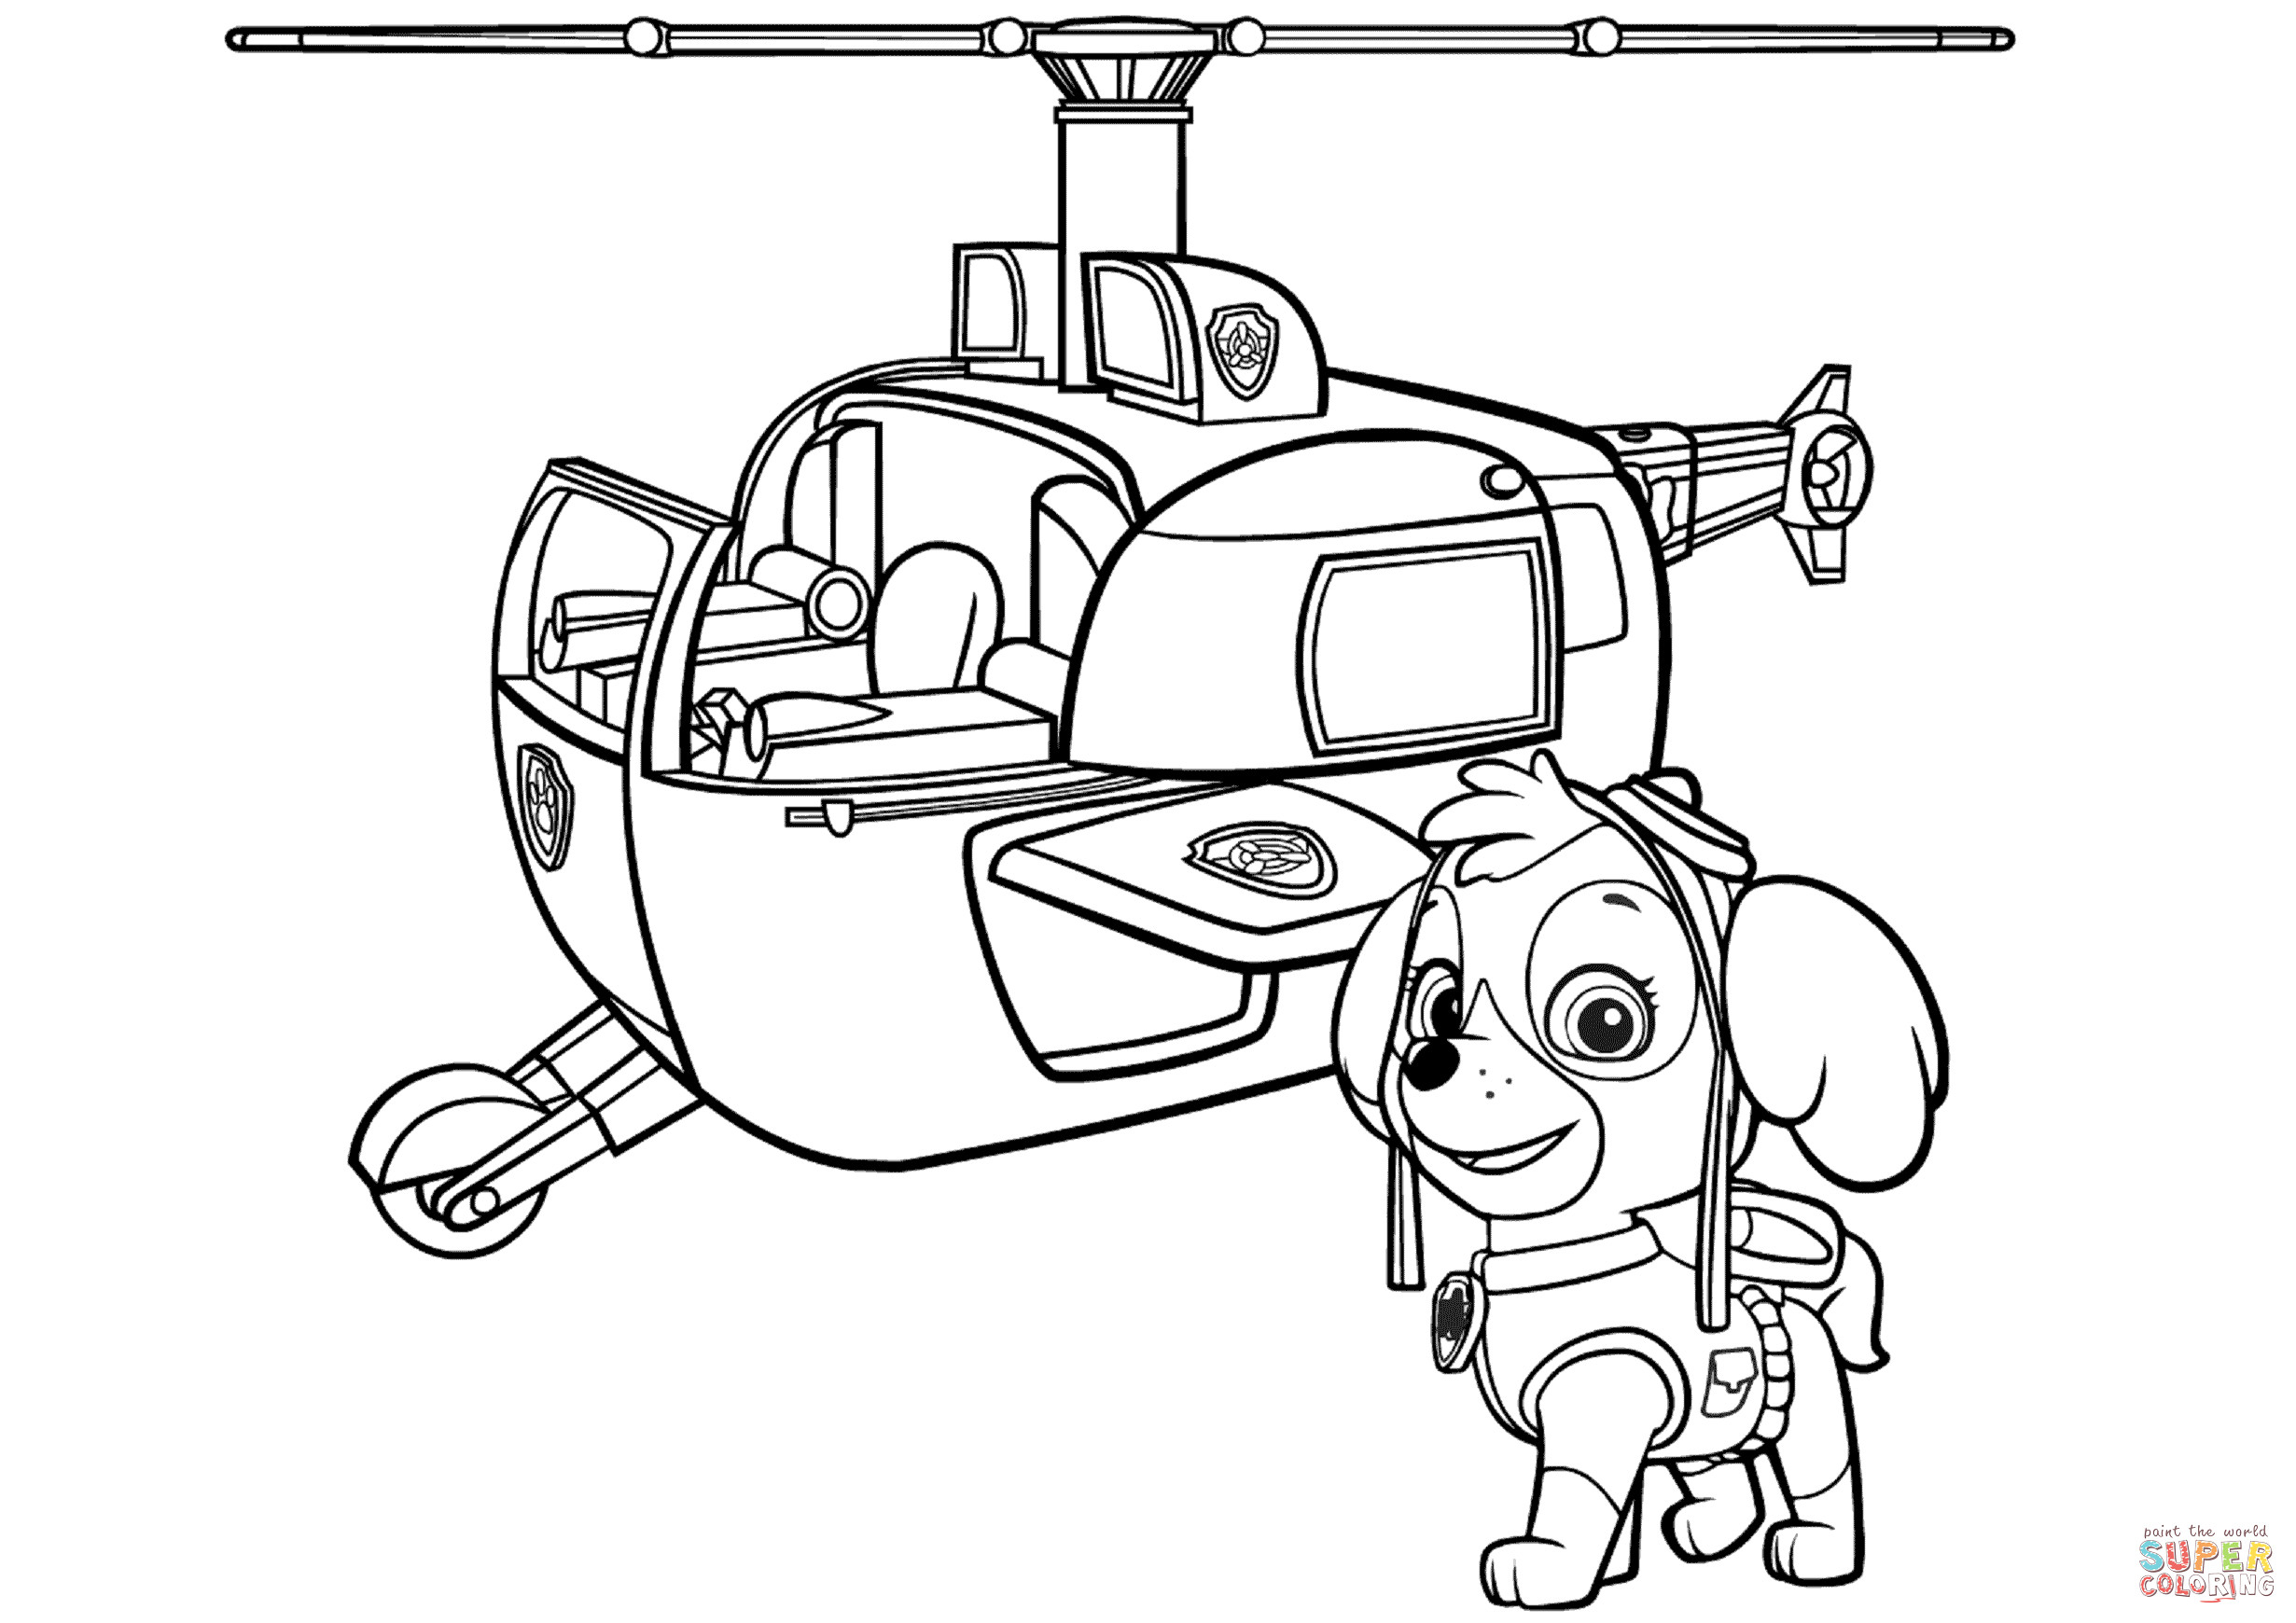 print paw patrol coloring pages paw patrol coloring pages printable free coloring sheets patrol paw print coloring pages